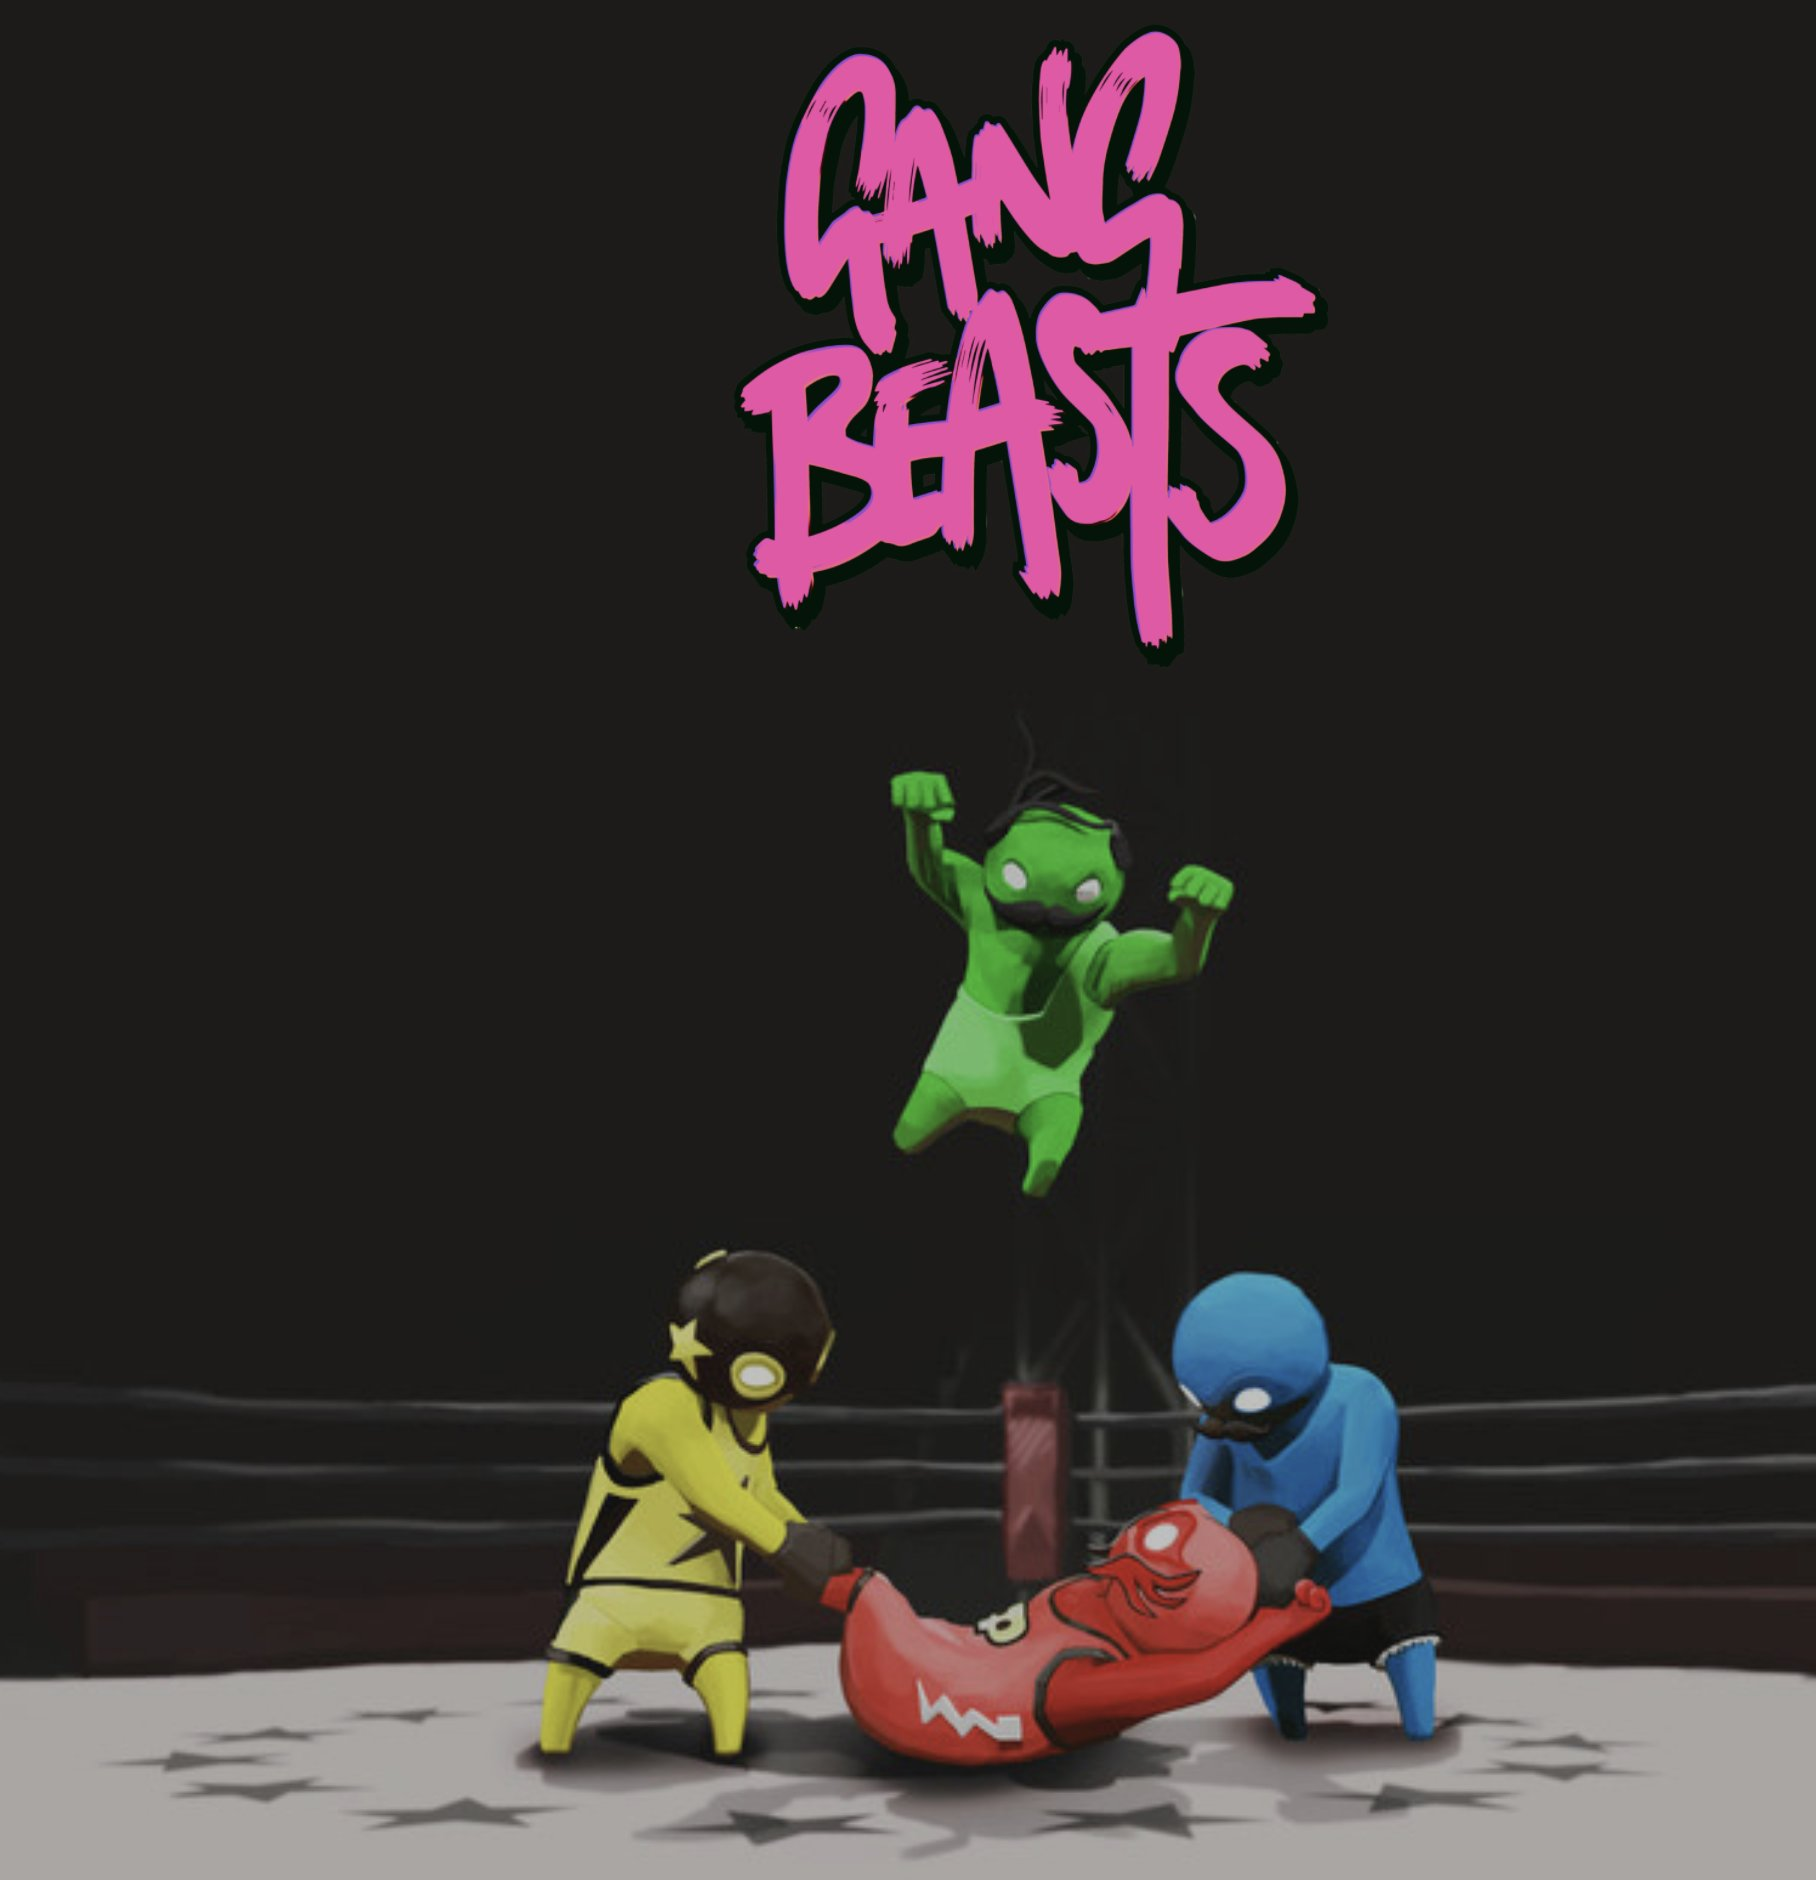 Now streaming from #PSX: Gang Beasts, coming to PS4 on December 12 https://t.co/6WGSKH0BS1 https://t.co/QF4c8zUk60